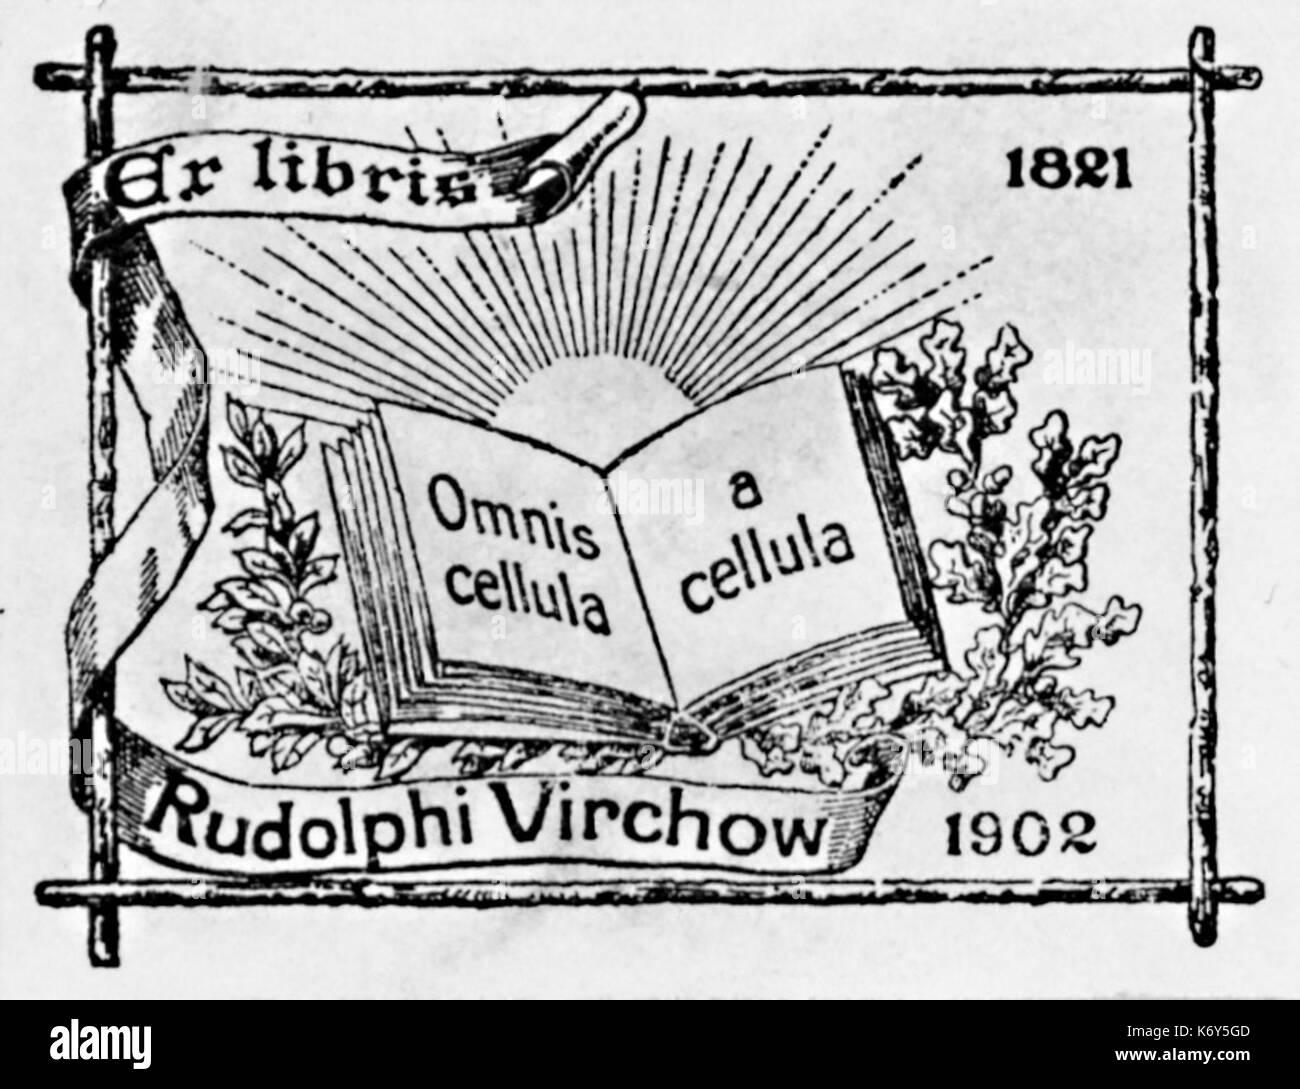 Rudolf virchow black and white stock photos & images alamy what did rudolf virchow do rudolph virchow cell theory cell theory reading worksheet